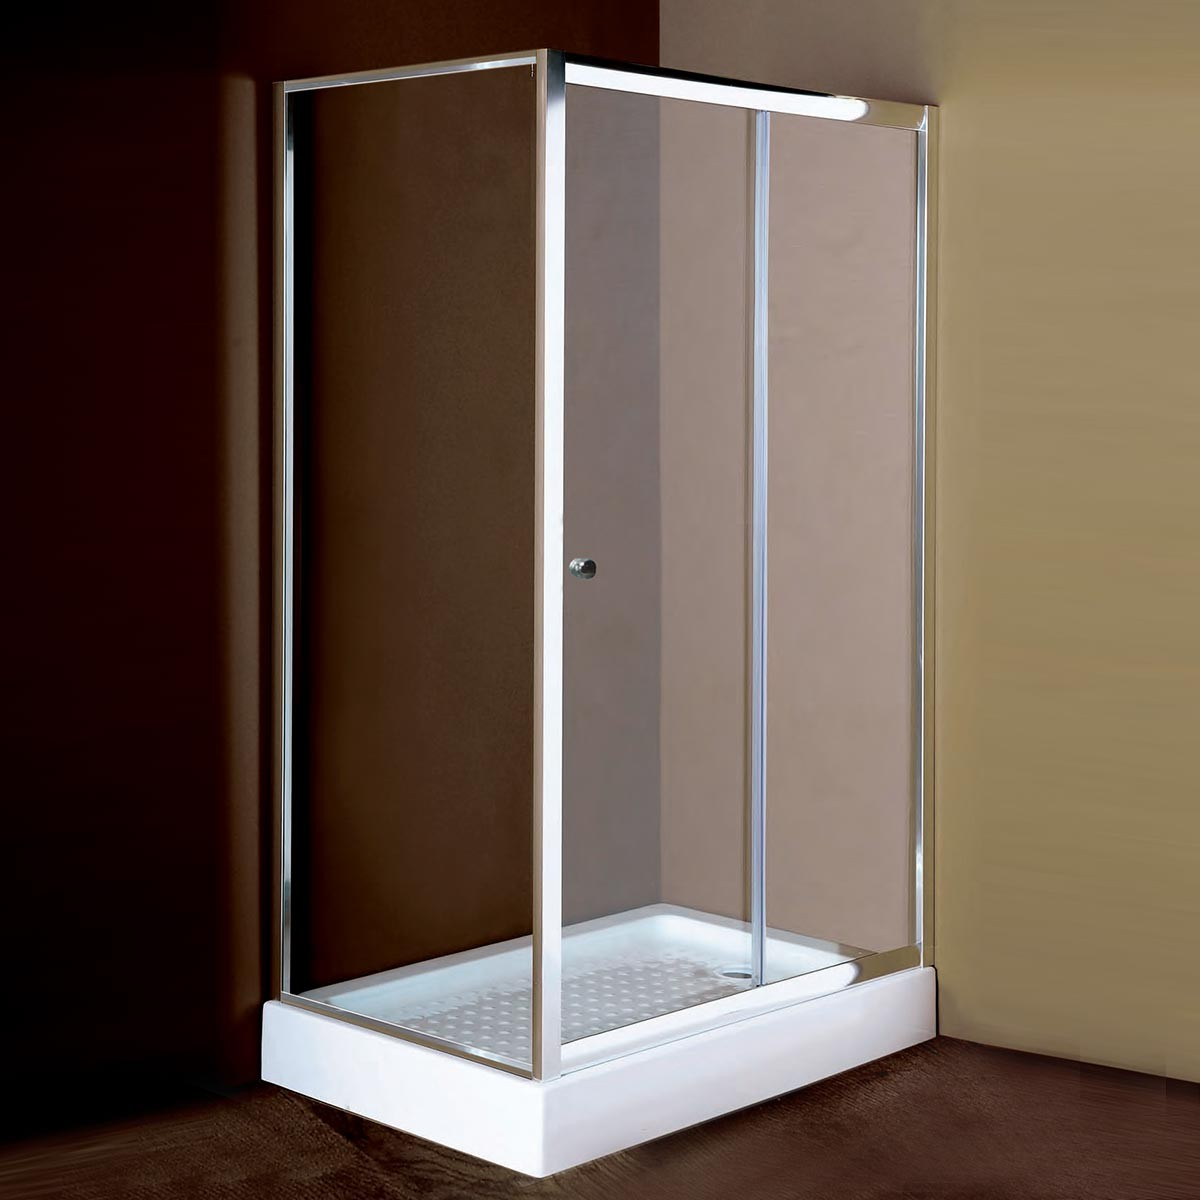 35 x 47 In. Shower Enclosure (DK-D108-90)